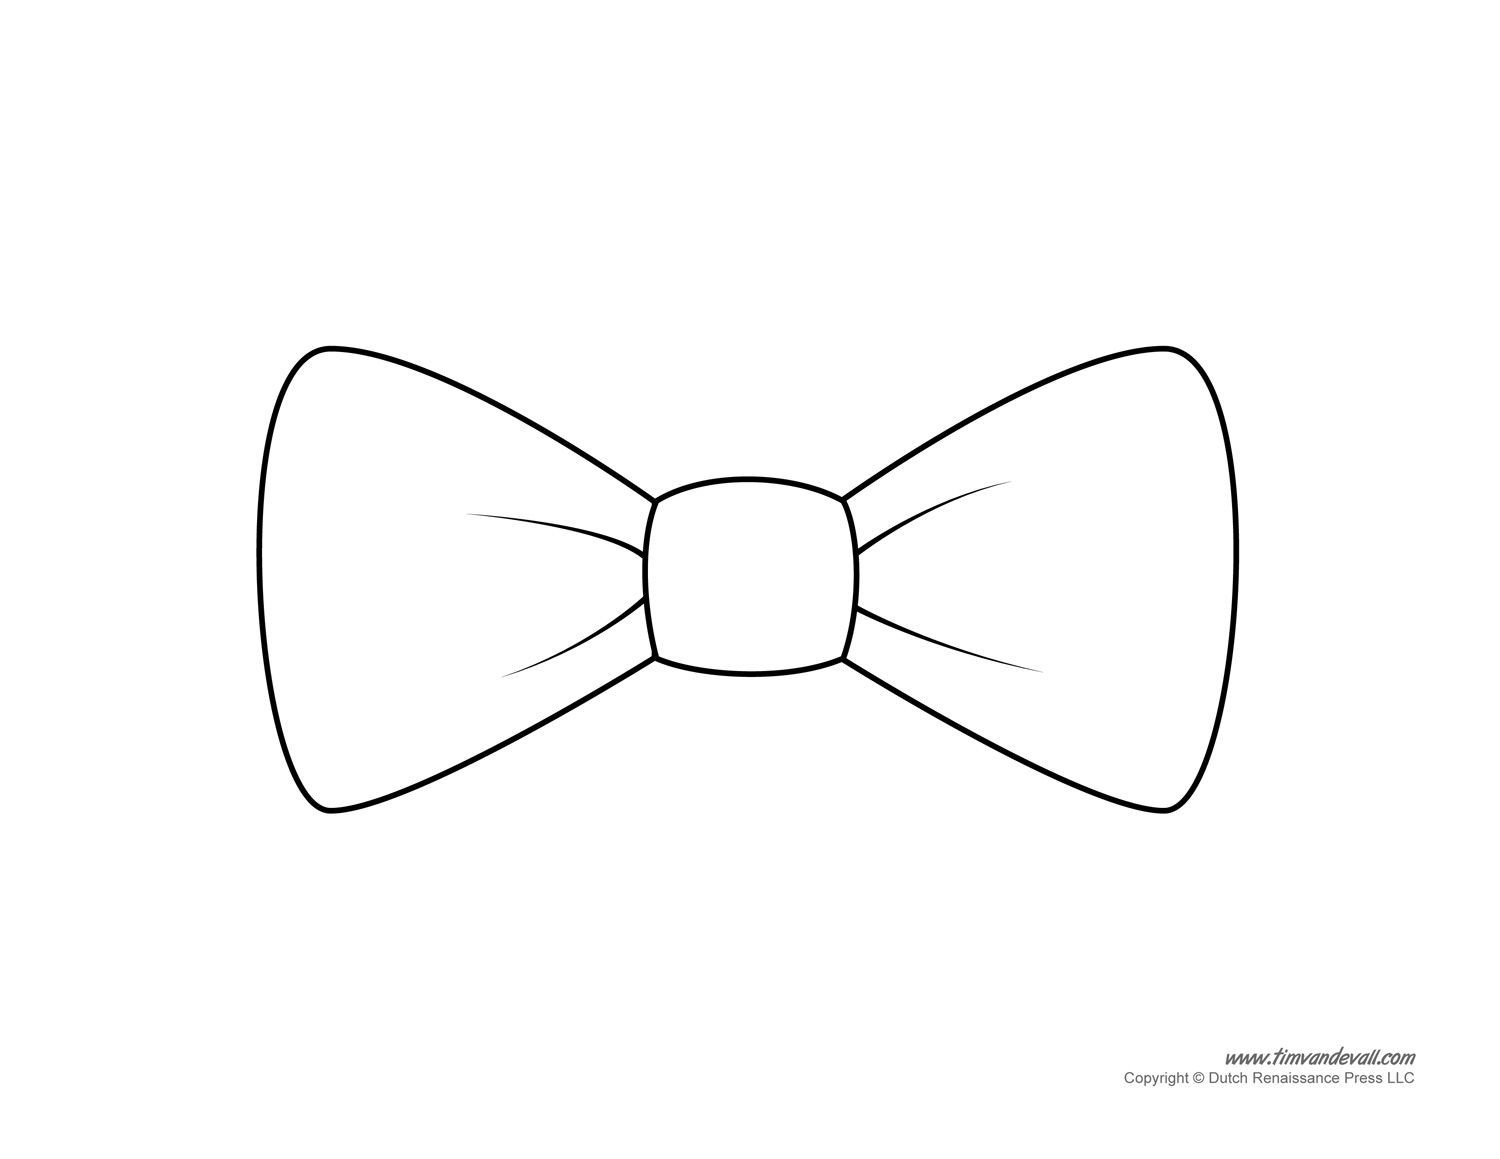 Bow tie clipart black and white 3 » Clipart Station.